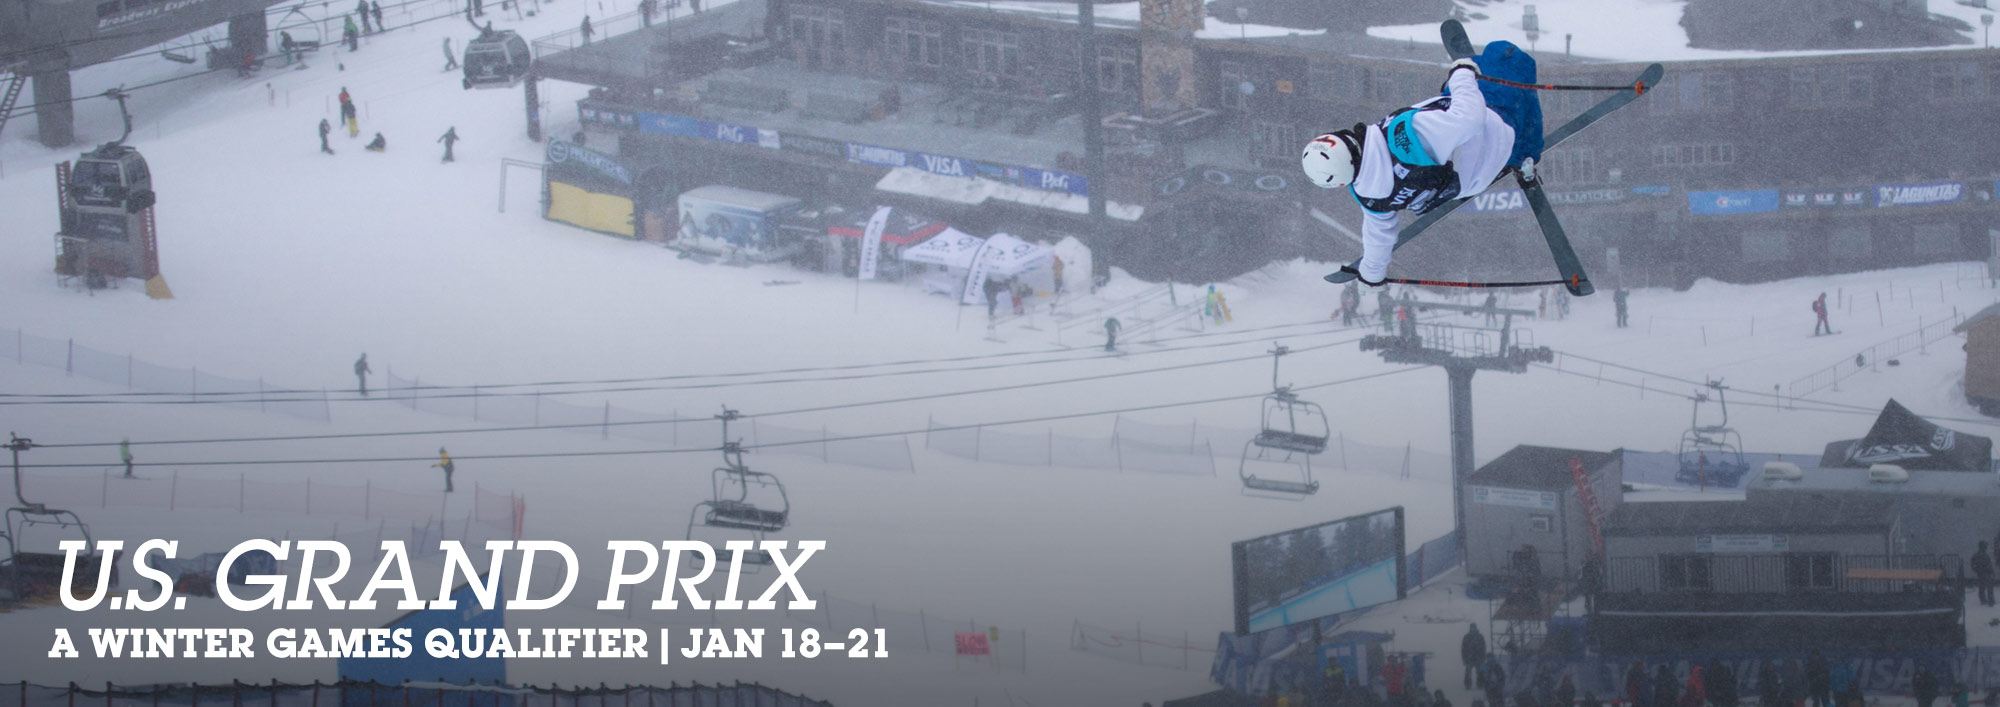 U.S. Grand Prix. A winter games qualifier. January 18–21.